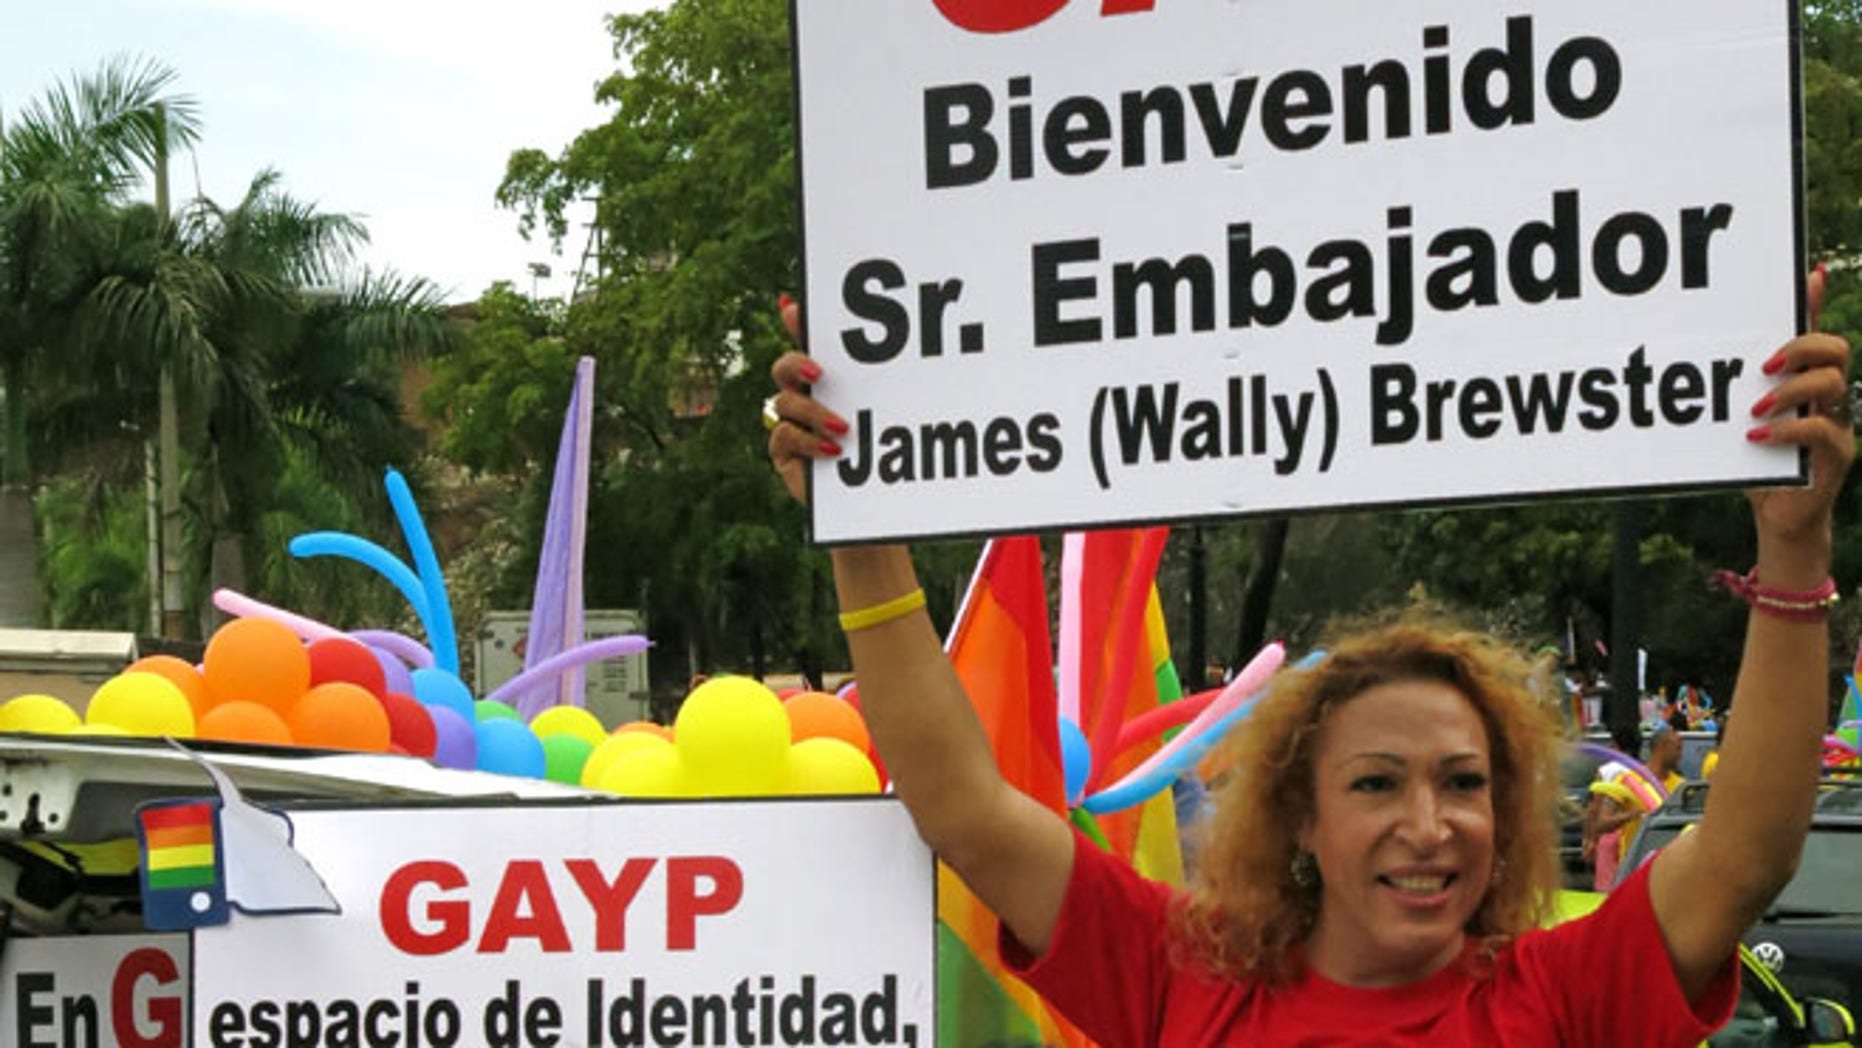 """FILE - In this June 30, 2013 file photo, people welcome U.S. Ambassador James """"Wally"""" Brewster during a gay pride parade in Santo Domingo, Dominican Republic. The signs read in Spanish """"Welcome Mr. Ambassador James """"Wally"""" Brewster,"""" right, and """"Identity space, equality zone."""" Activists say Brewster's presence has helped a cultural shift that has allowed gay Dominicans to run for office openly as homosexuals. âWally has become an iconic figure in the LGBT movement because the movement does have strong local figures,â said prominent activist Alexander Mundary. (AP Photo/Ezequiel Abiu Lopez, File)"""